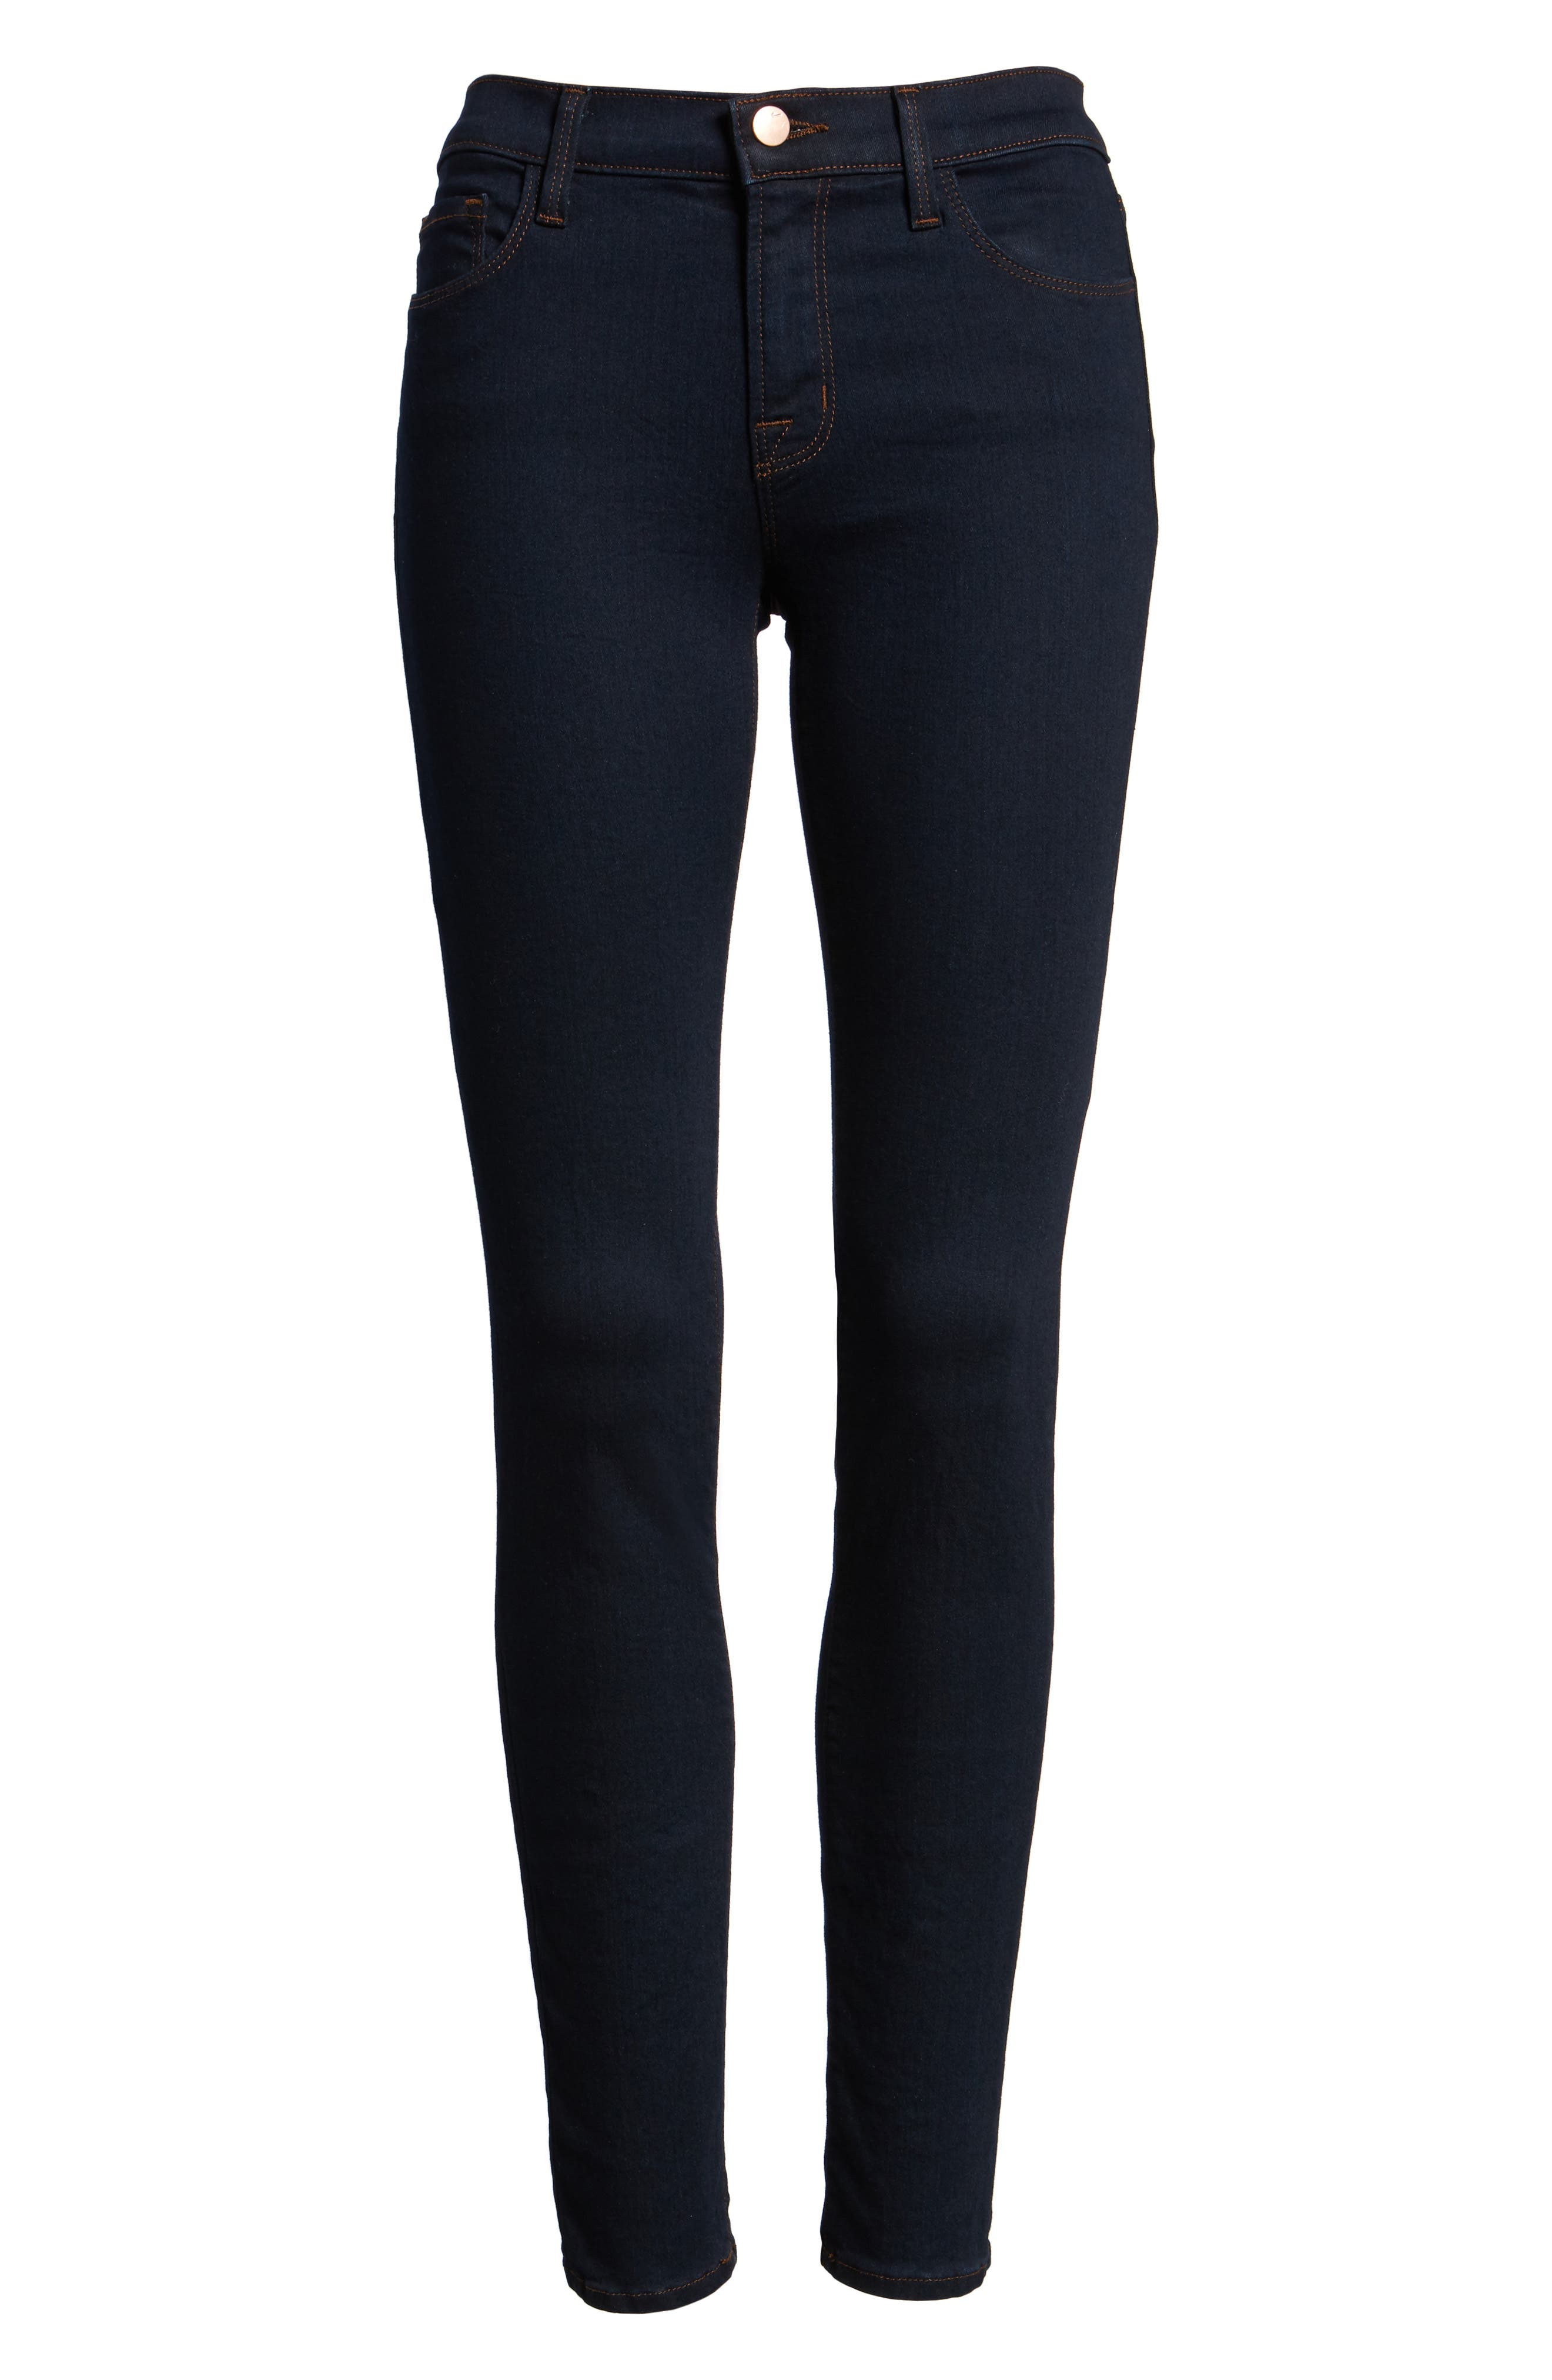 '811' Ankle Skinny Jeans,                             Alternate thumbnail 4, color,                             460